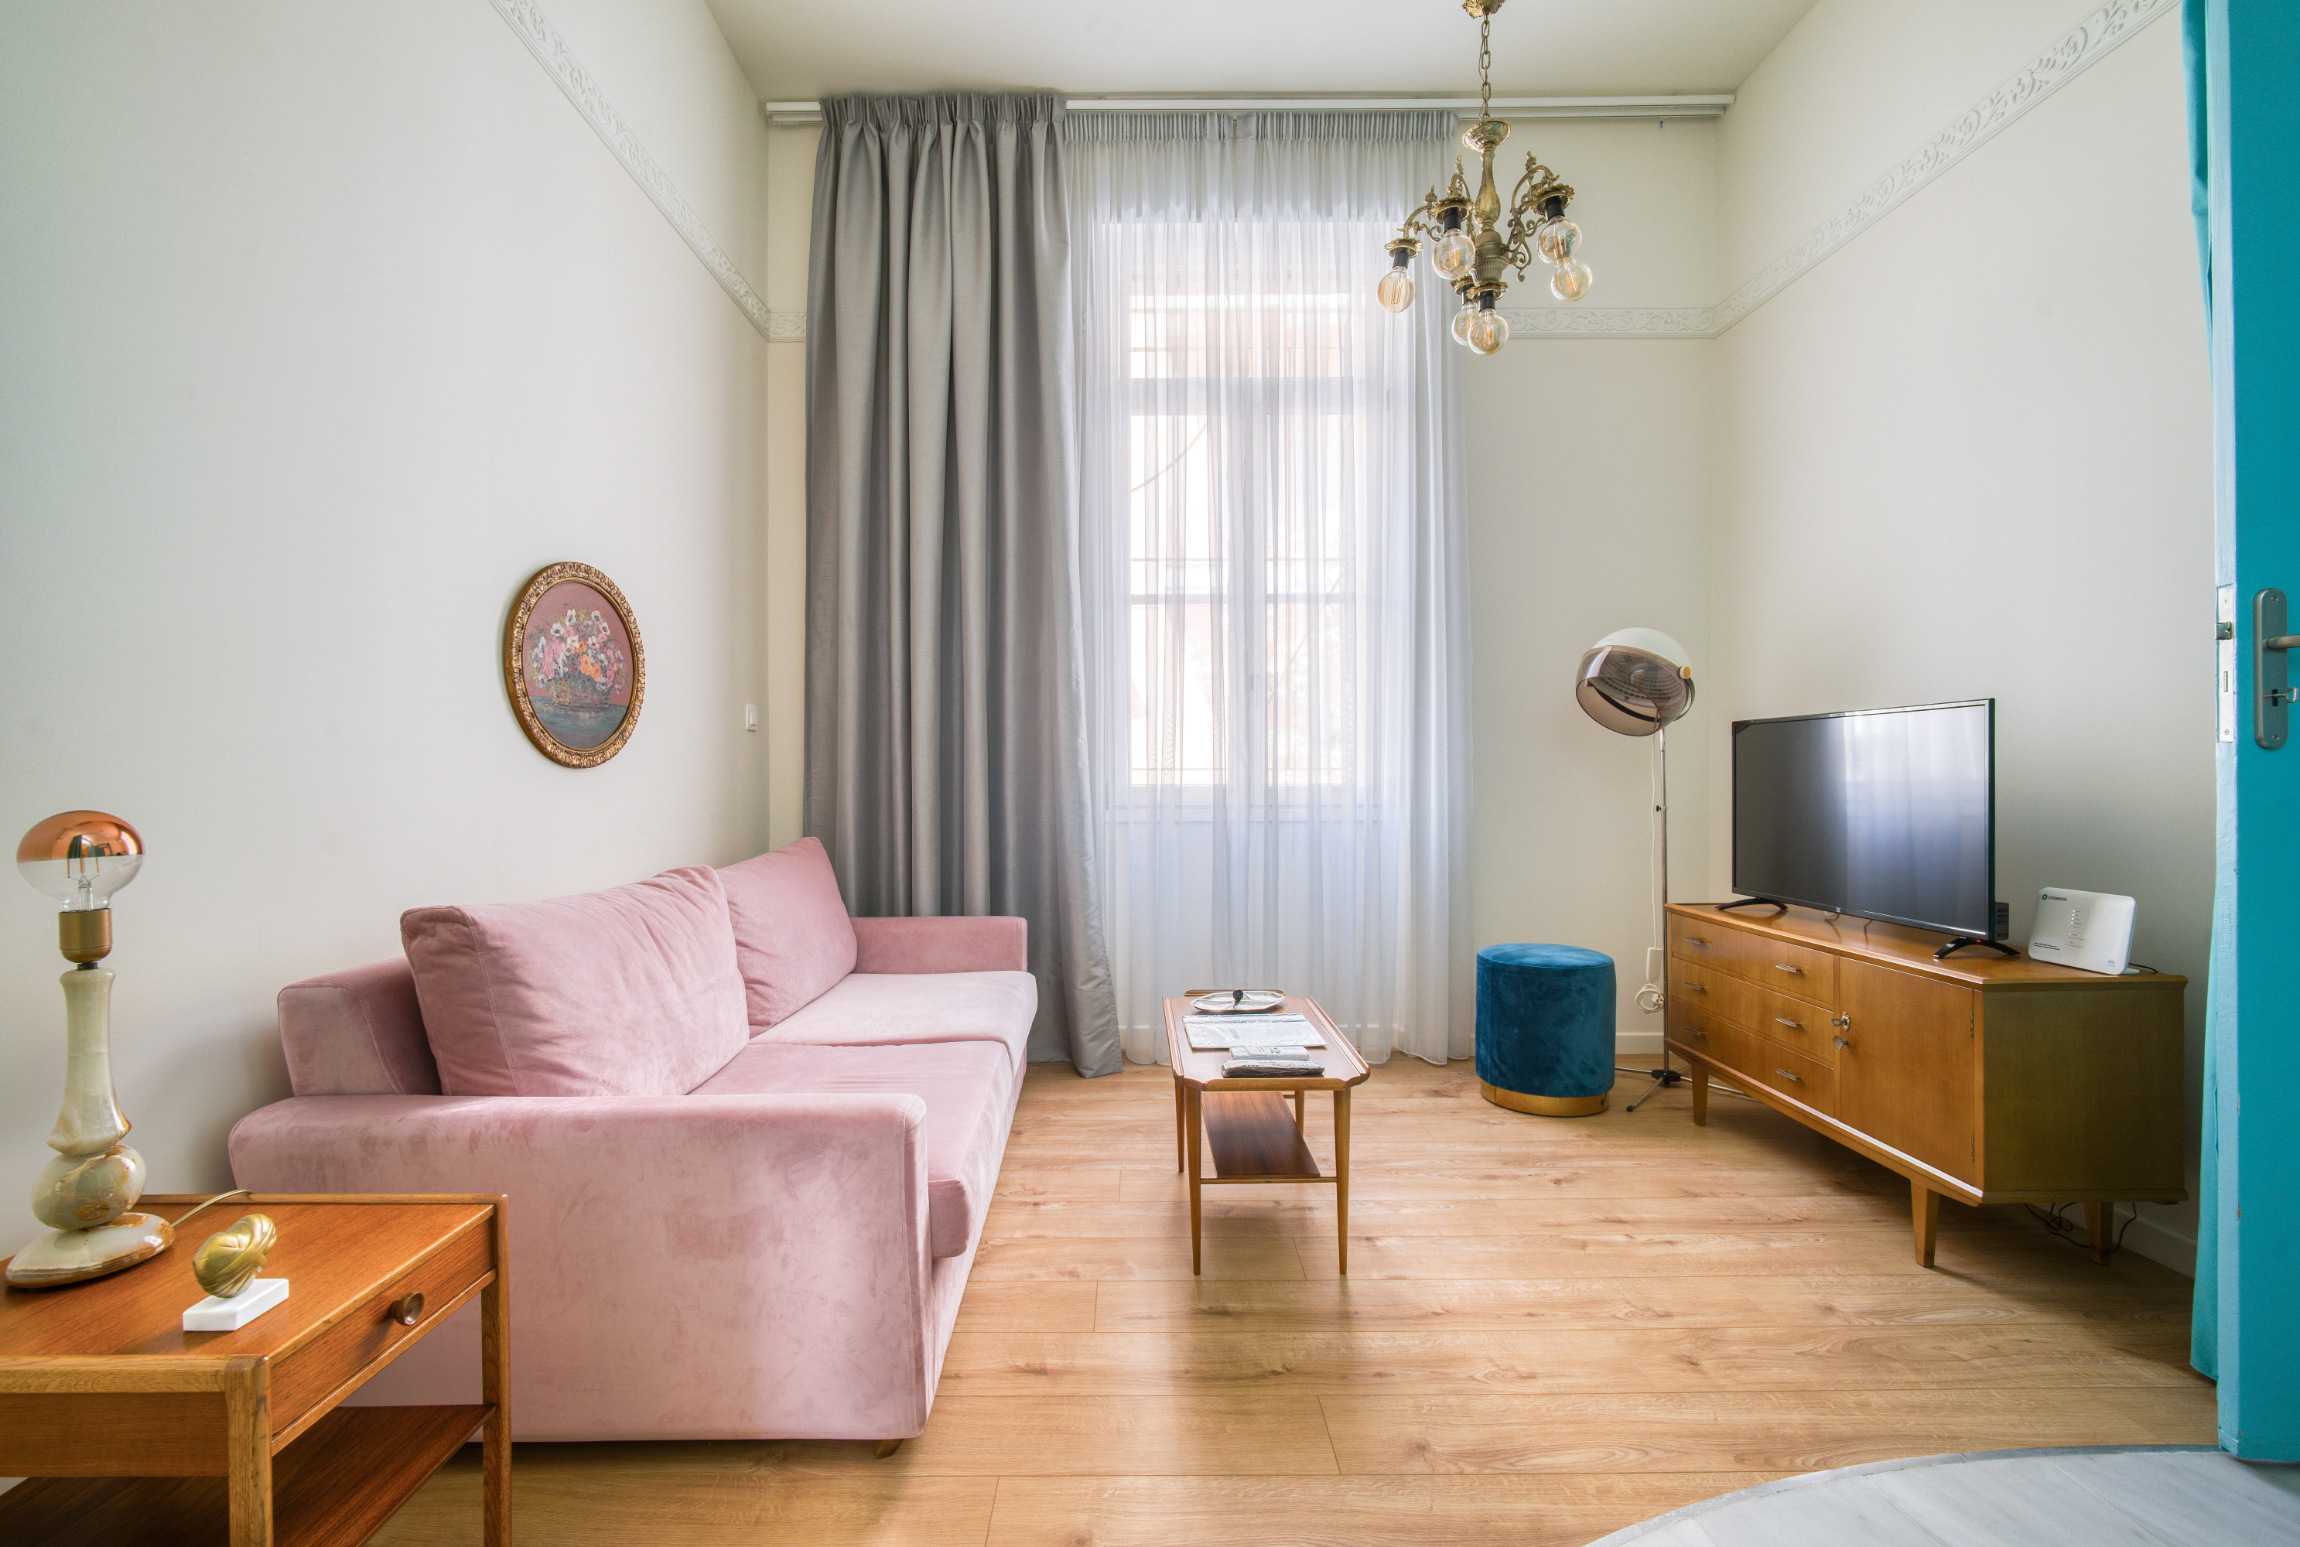 Apartment A1 in Keramos Athens